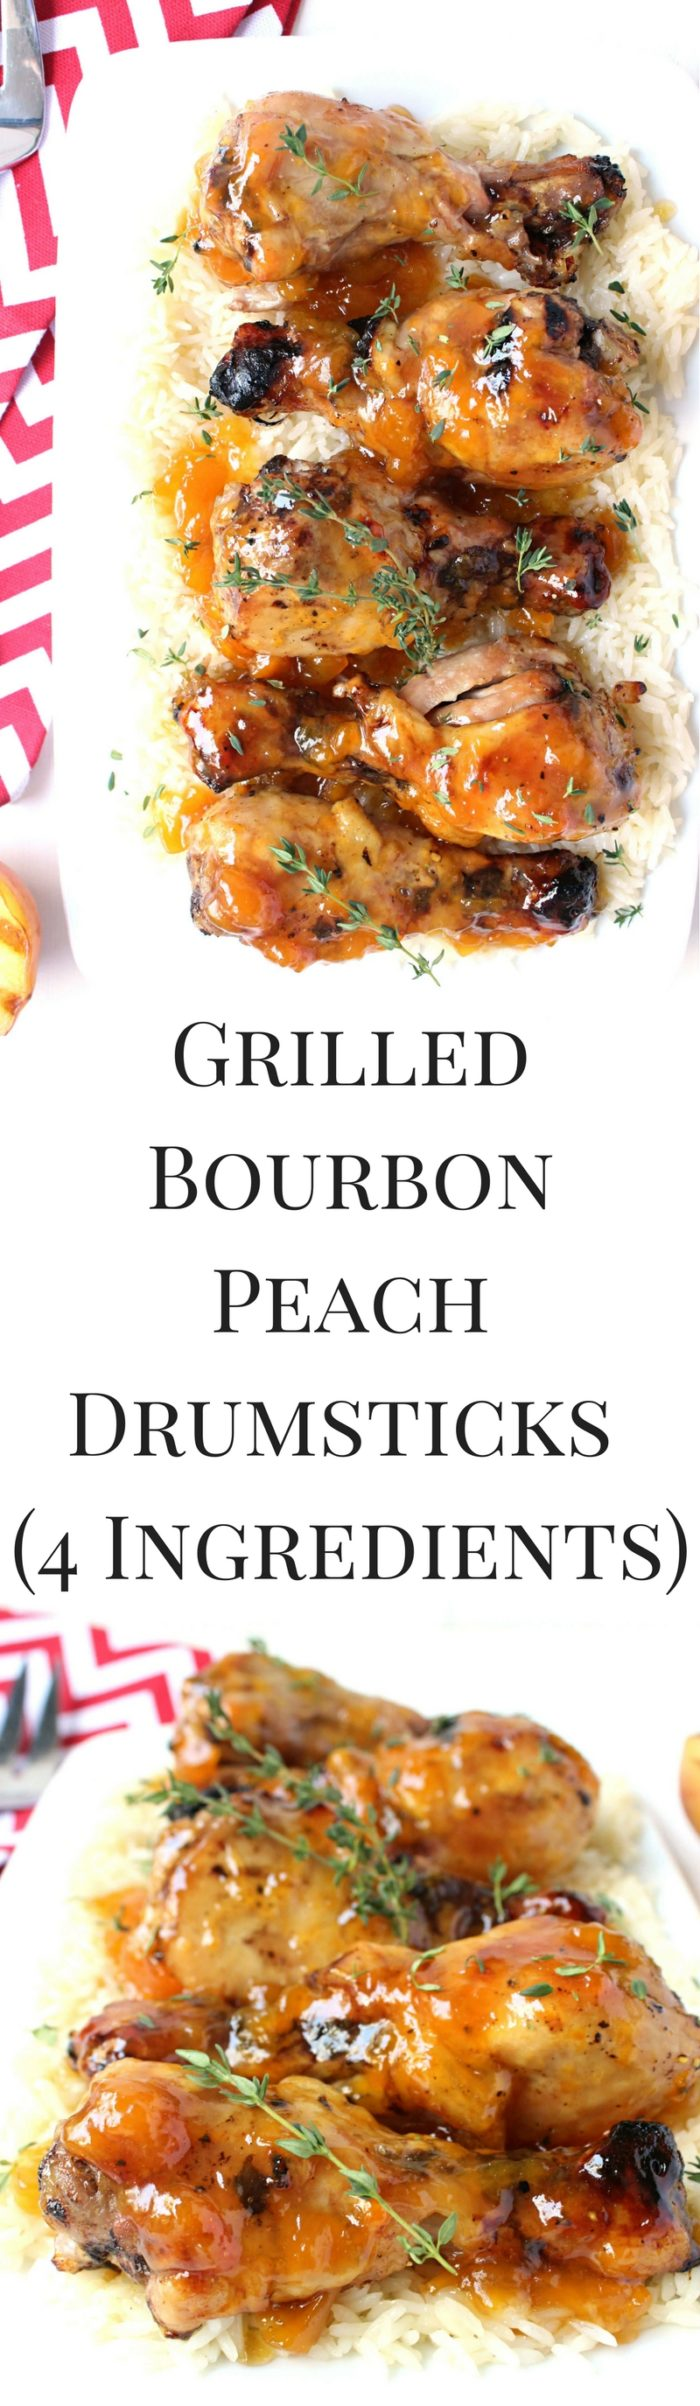 Grilled Bourbon Peach Drumsticks (4 Ingredients!)